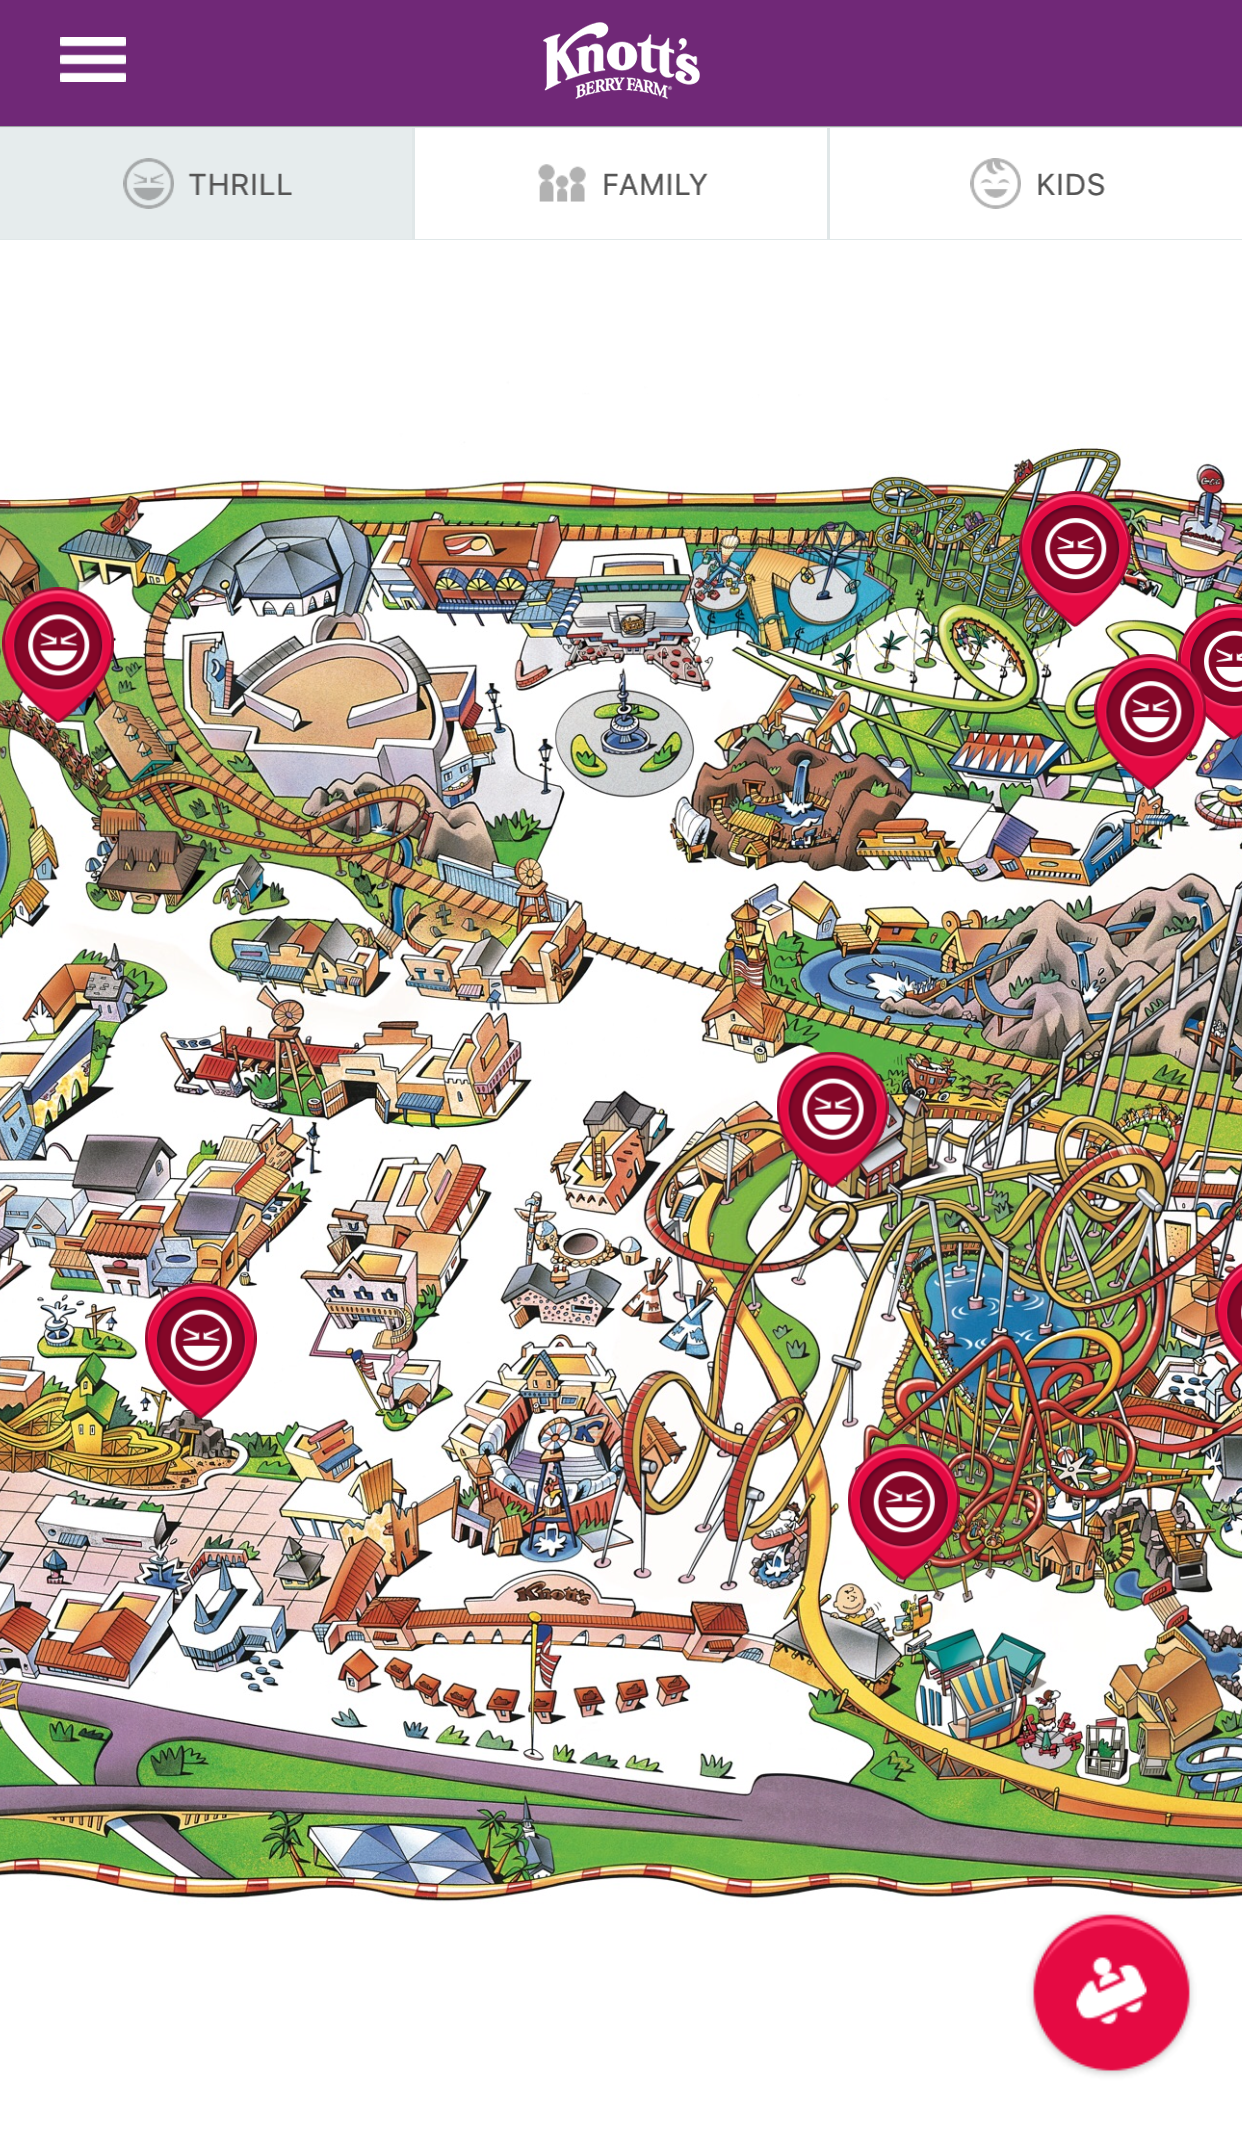 Knott's Berry Farm's New App Packs Lots Of Features